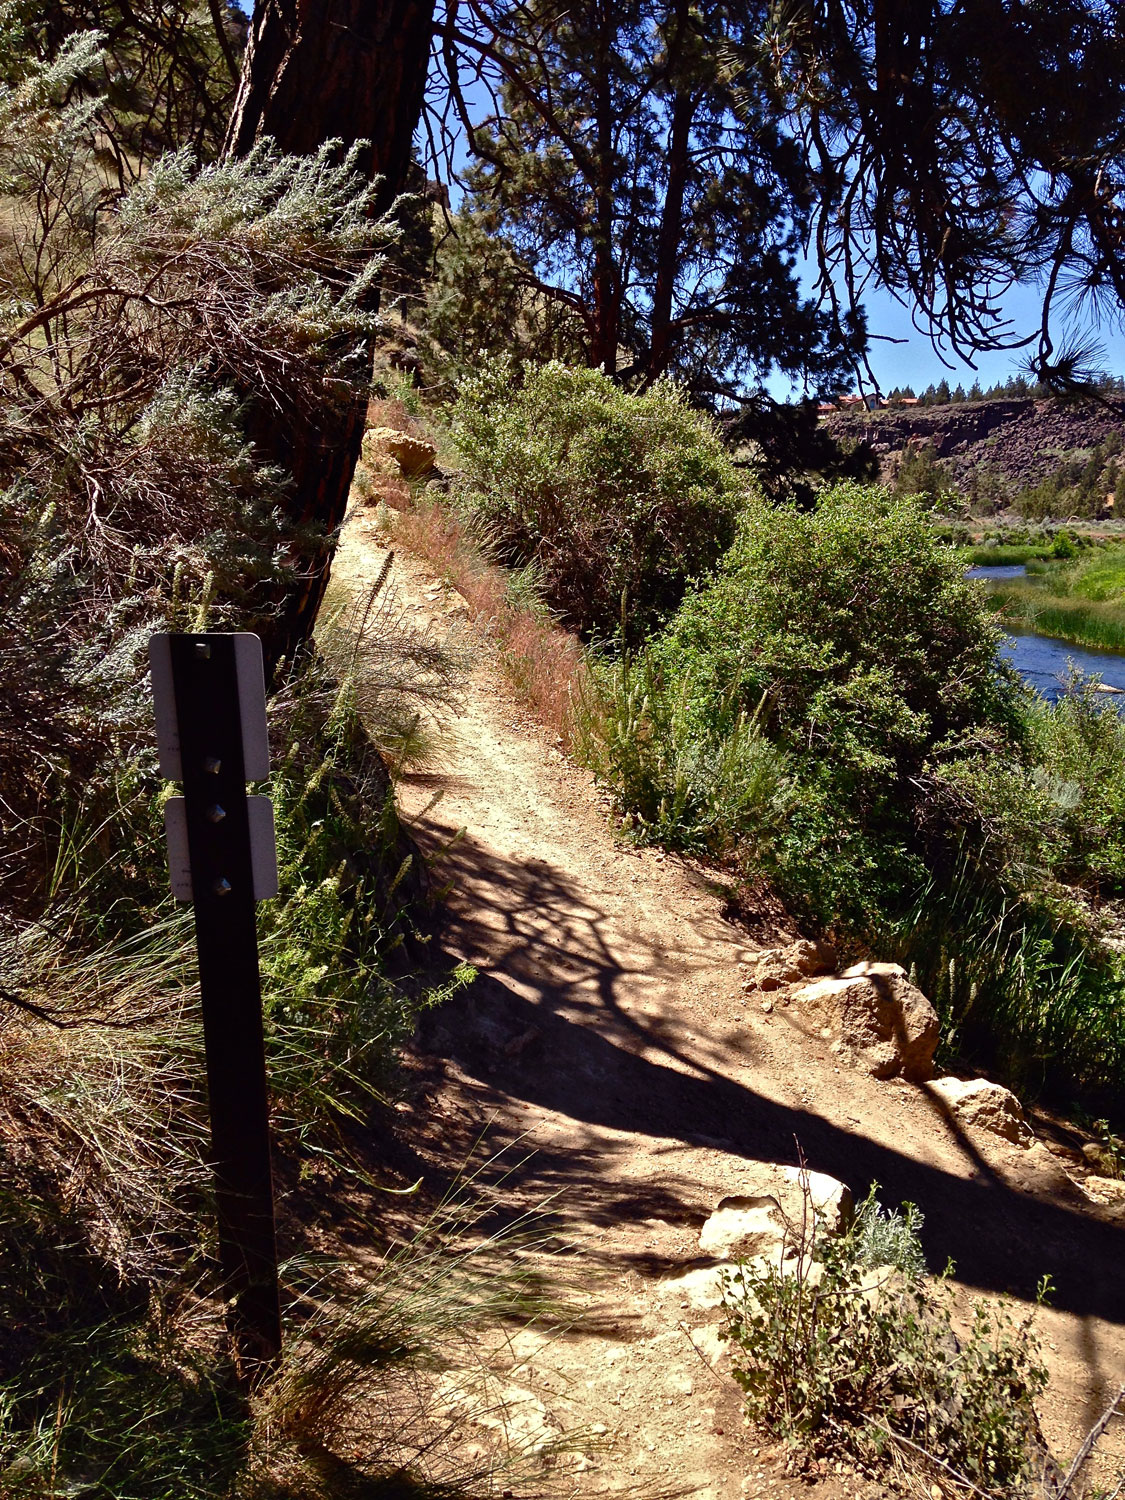 Finally back at the first junction of the Mesa Verde Trail at Smith Rock State Park where a left on the River Trail takes you back to the bridge.